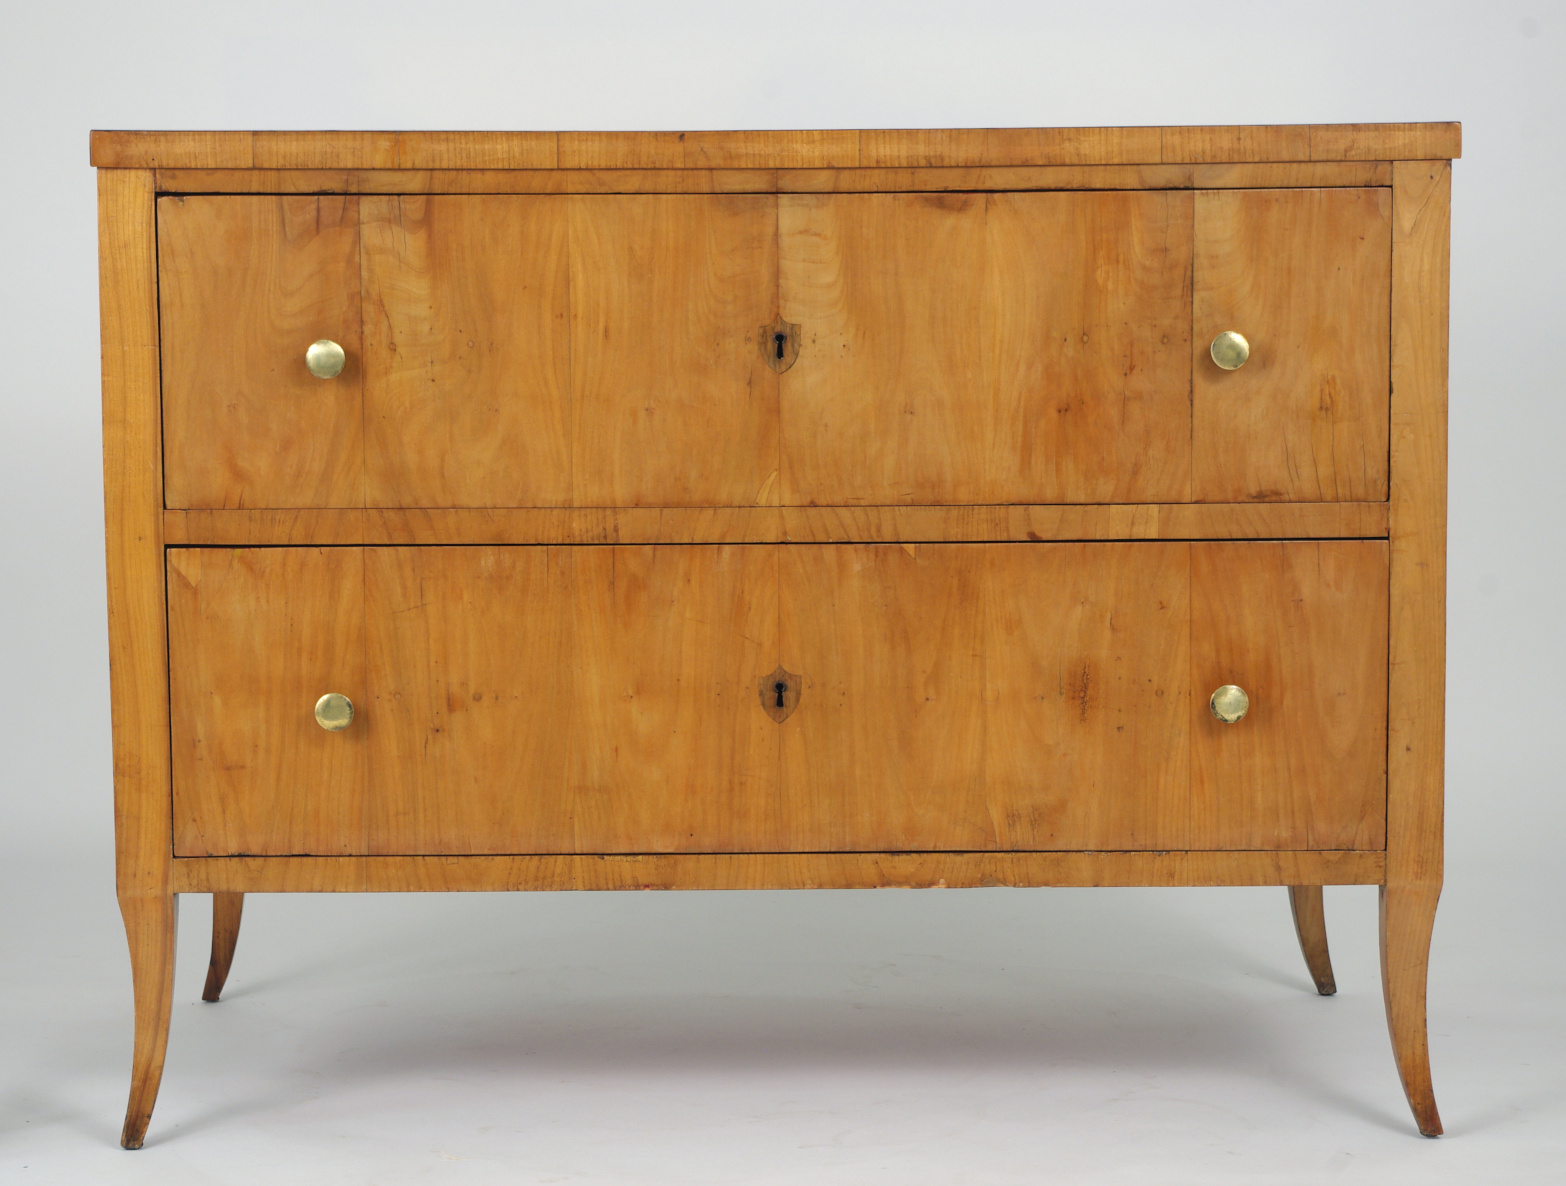 View 4: Biedermeier Cherry Chest of Drawers, c. 1810